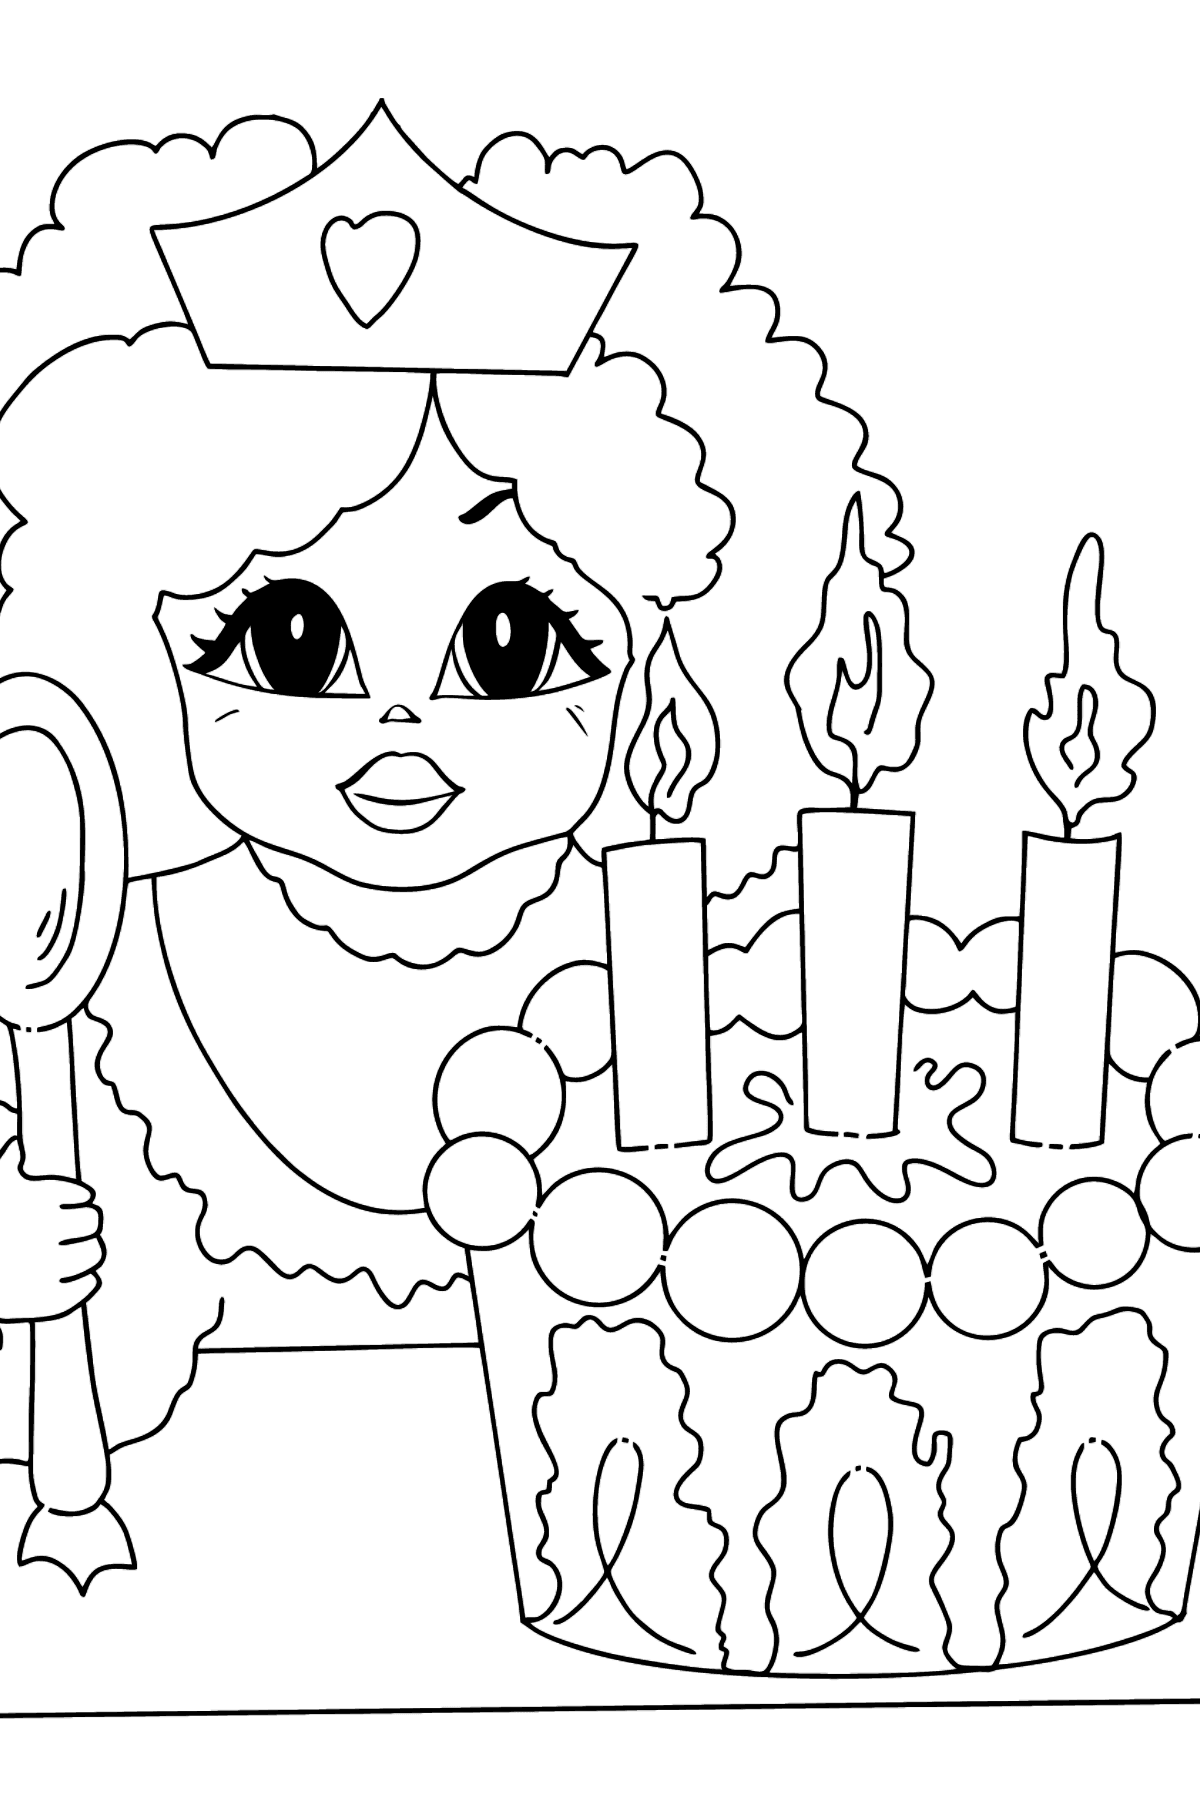 Coloring Picture - A Princess with Cake - Coloring Pages for Kids